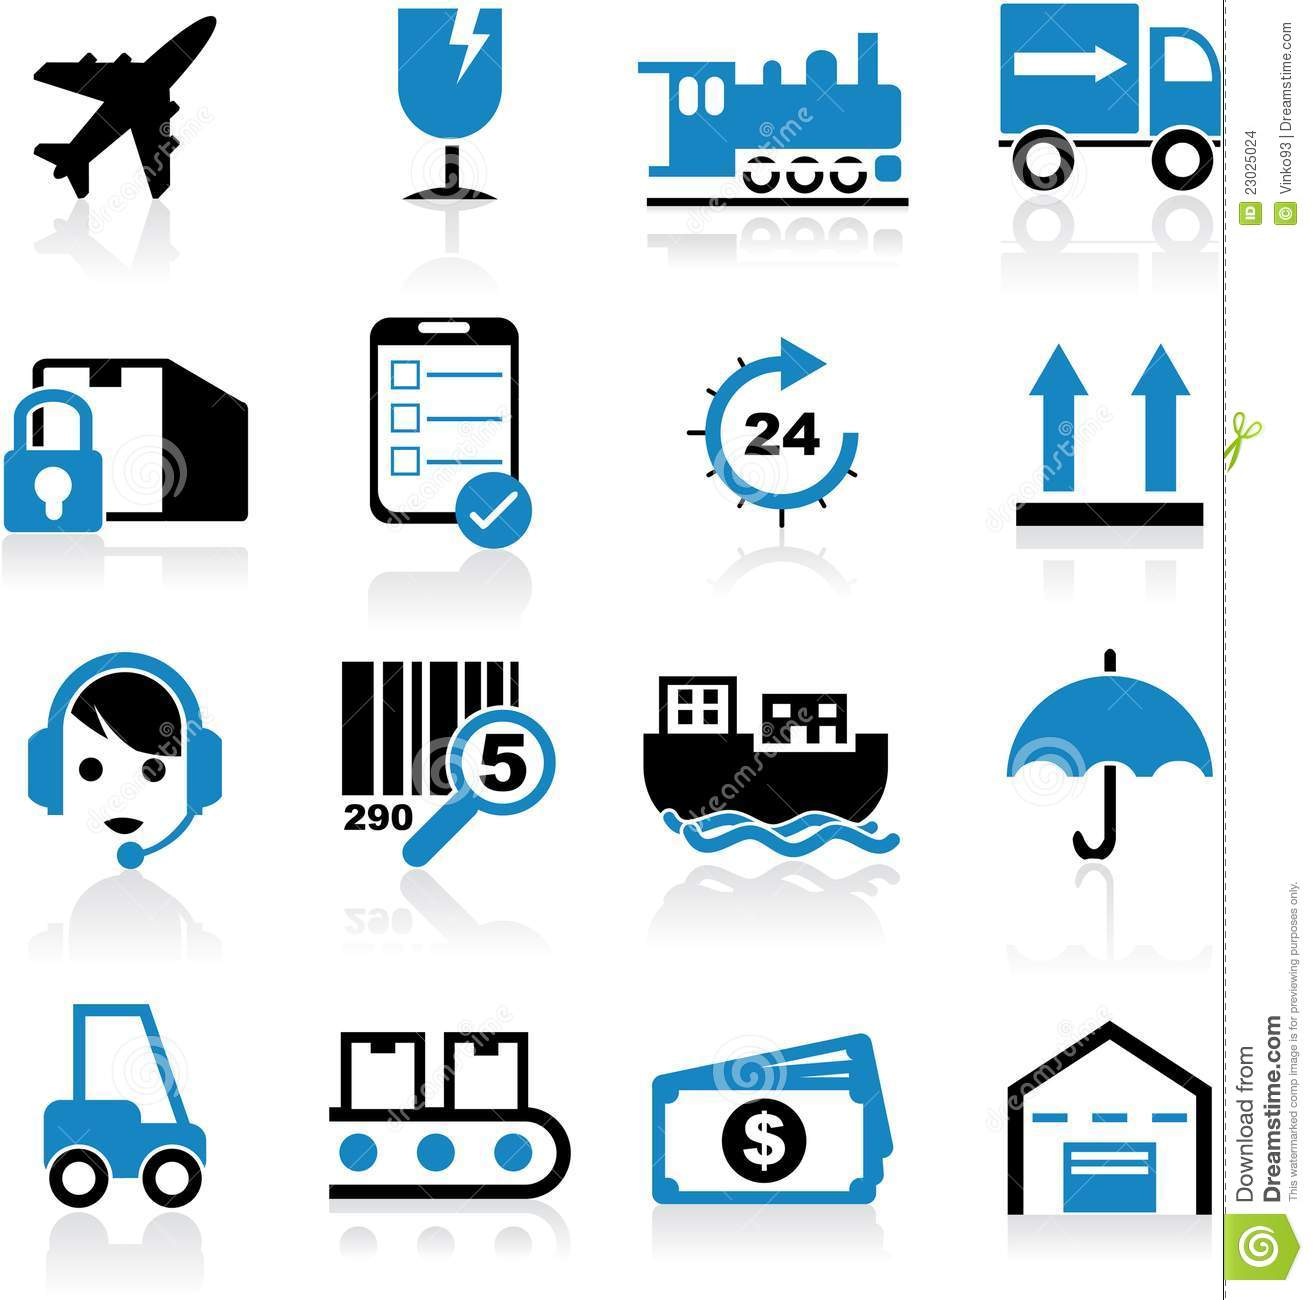 Shipping Icons Stock Images - Image: 23025024 X Arrow Money Bag